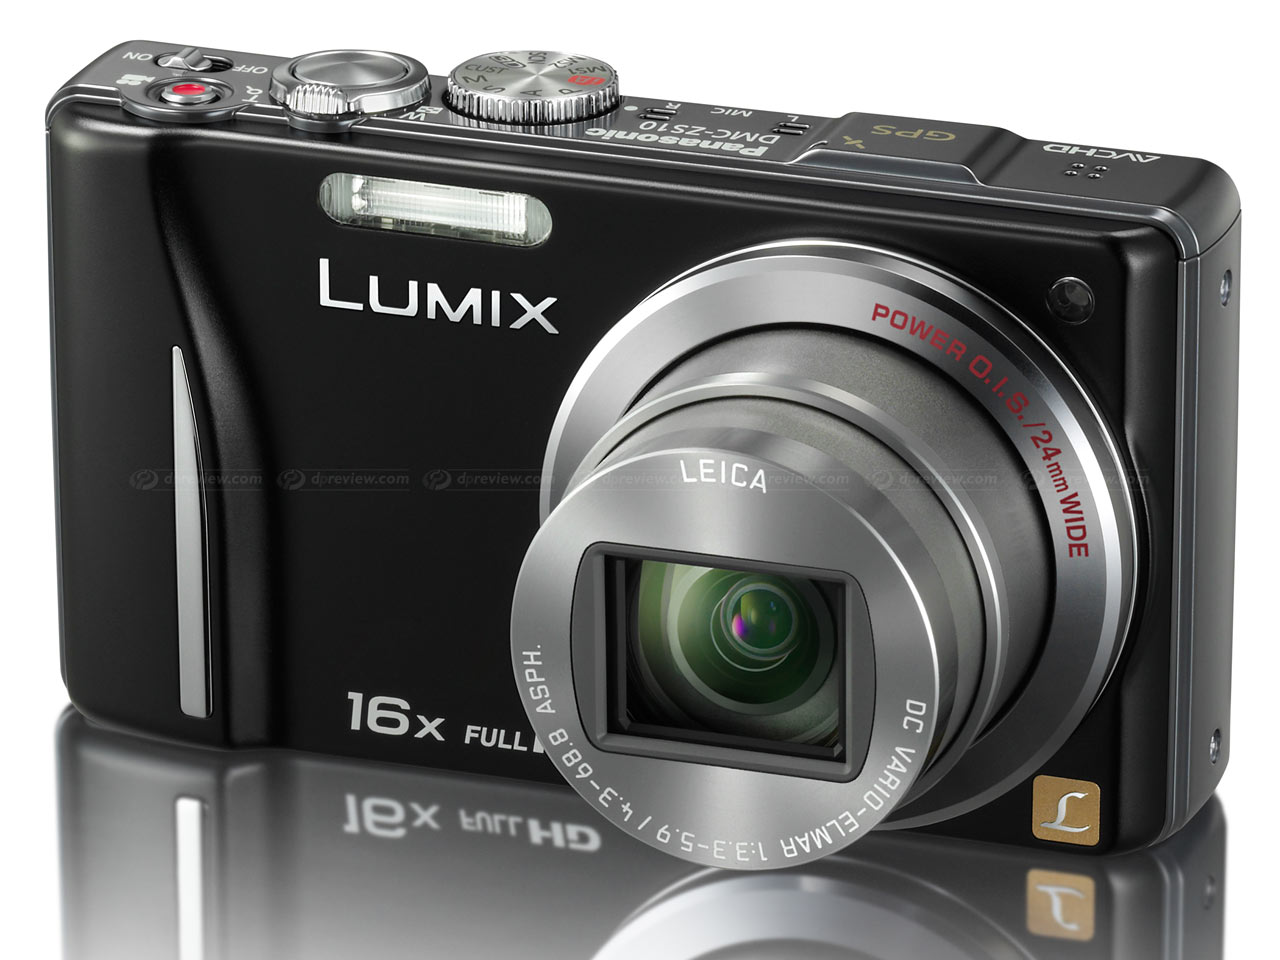 panasonic lumix dmc zs10 owner manual free owners manual u2022 rh wordworksbysea com panasonic lumix dmc zs8 owners manual panasonic lumix dmc zs8 owners manual